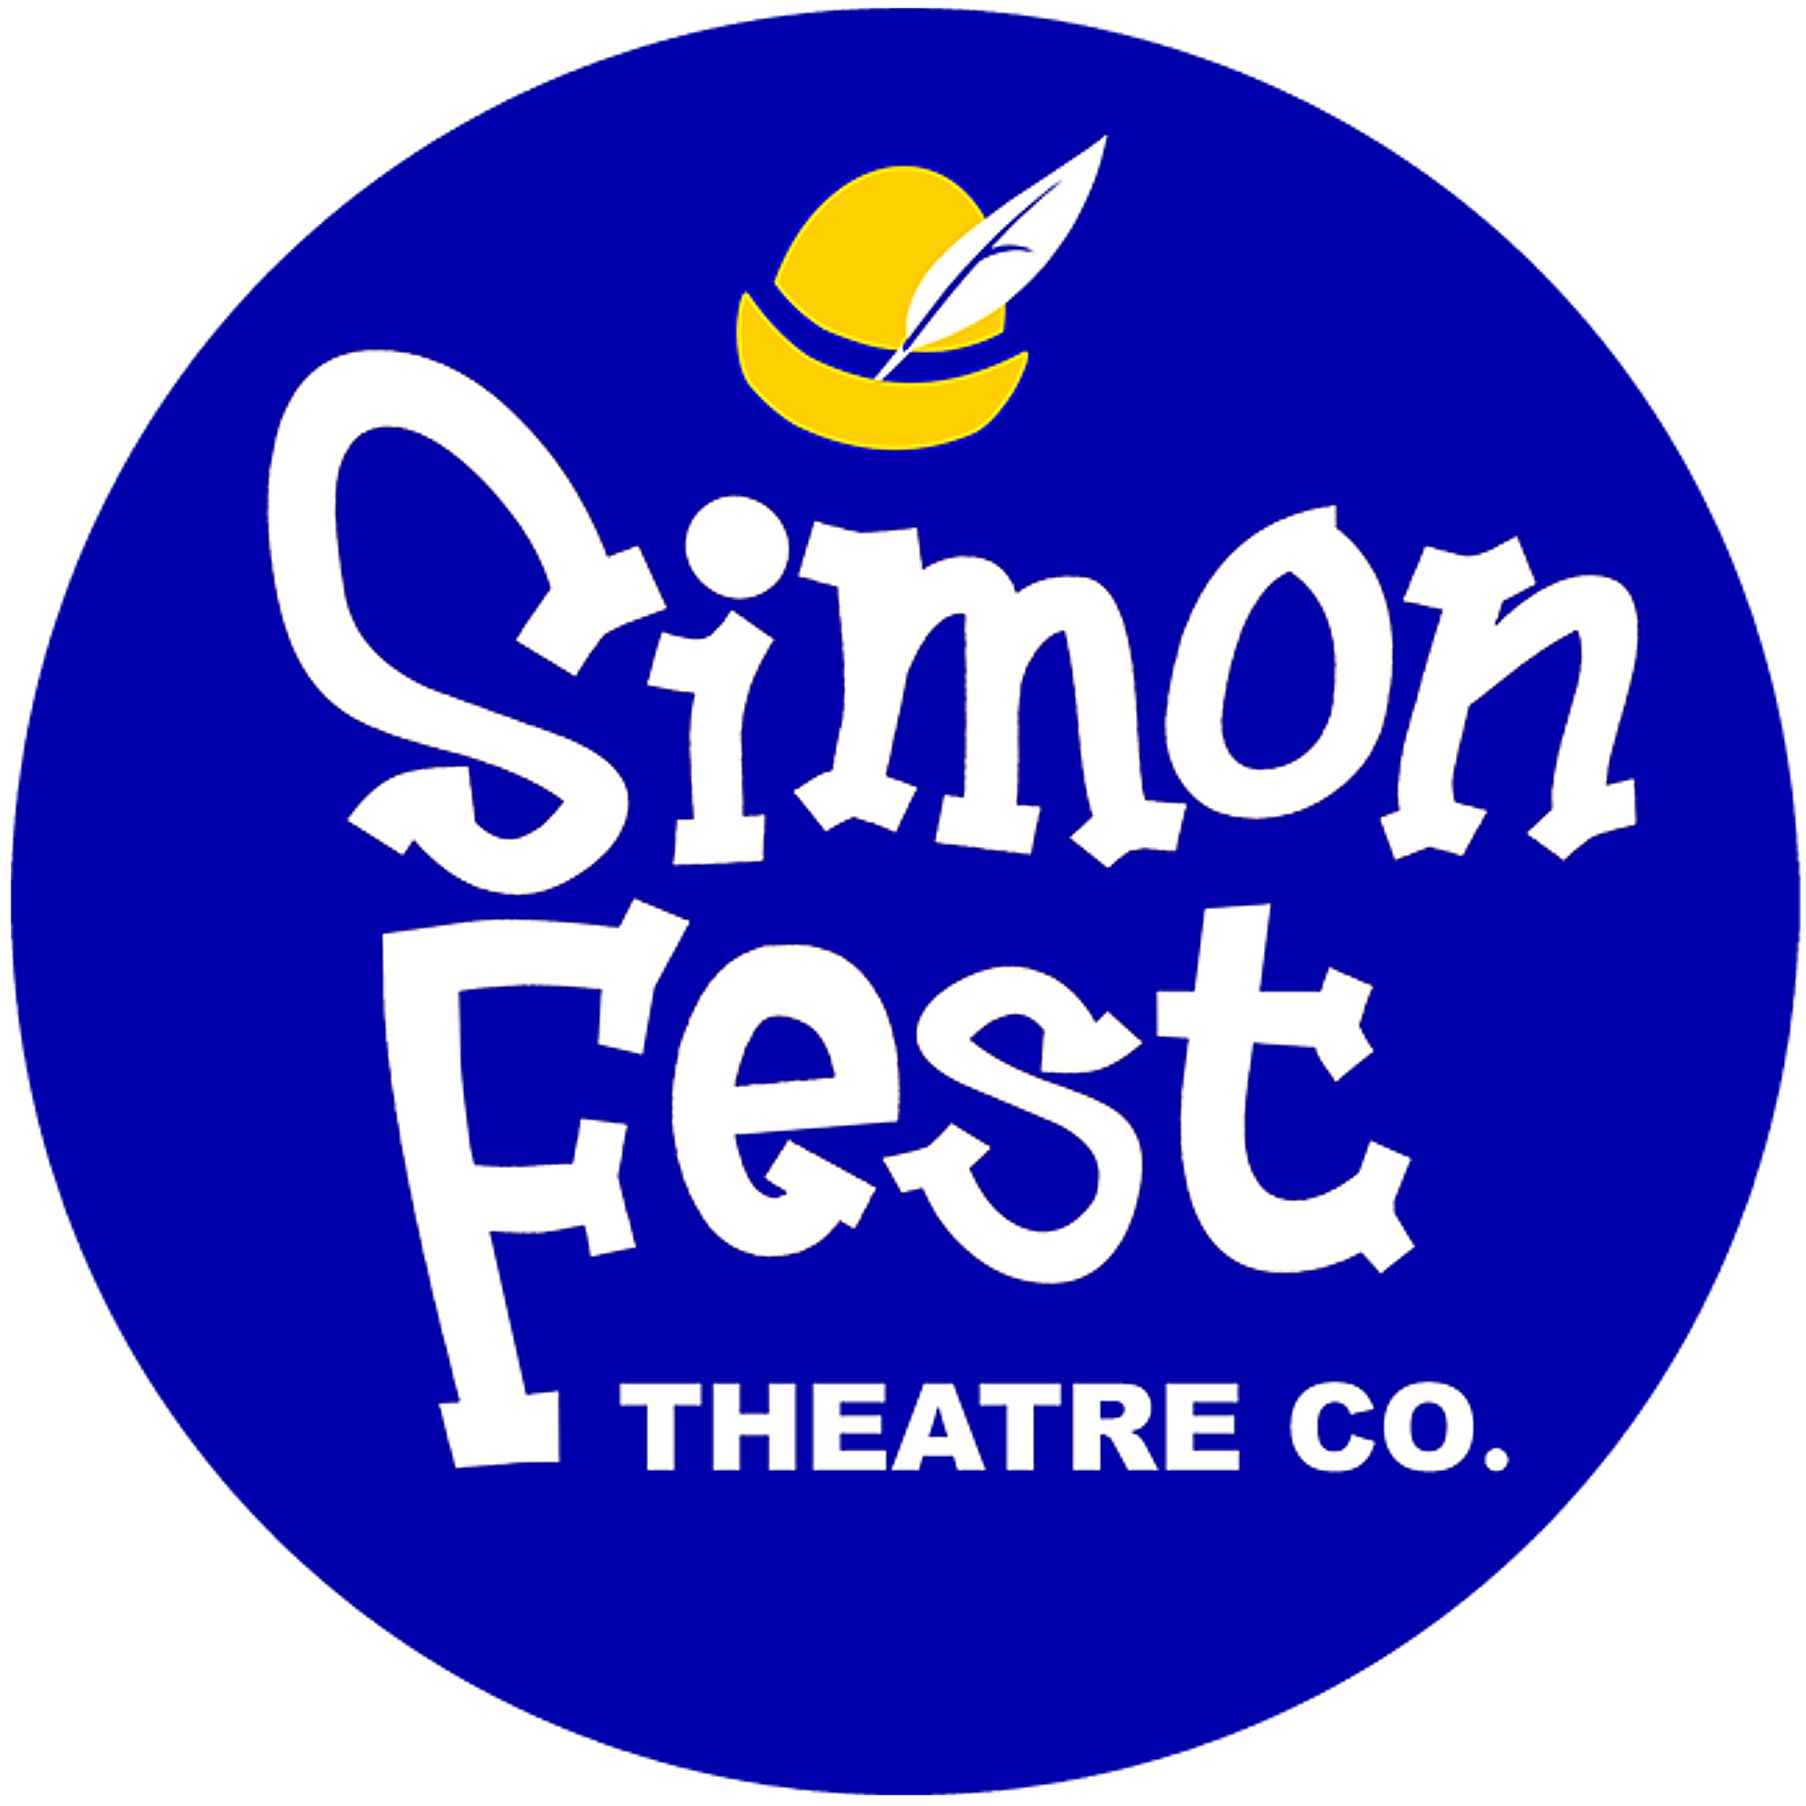 Simon Fest brings 'Barefoot in the Park,' which originally starred Robert Redford, to Park City